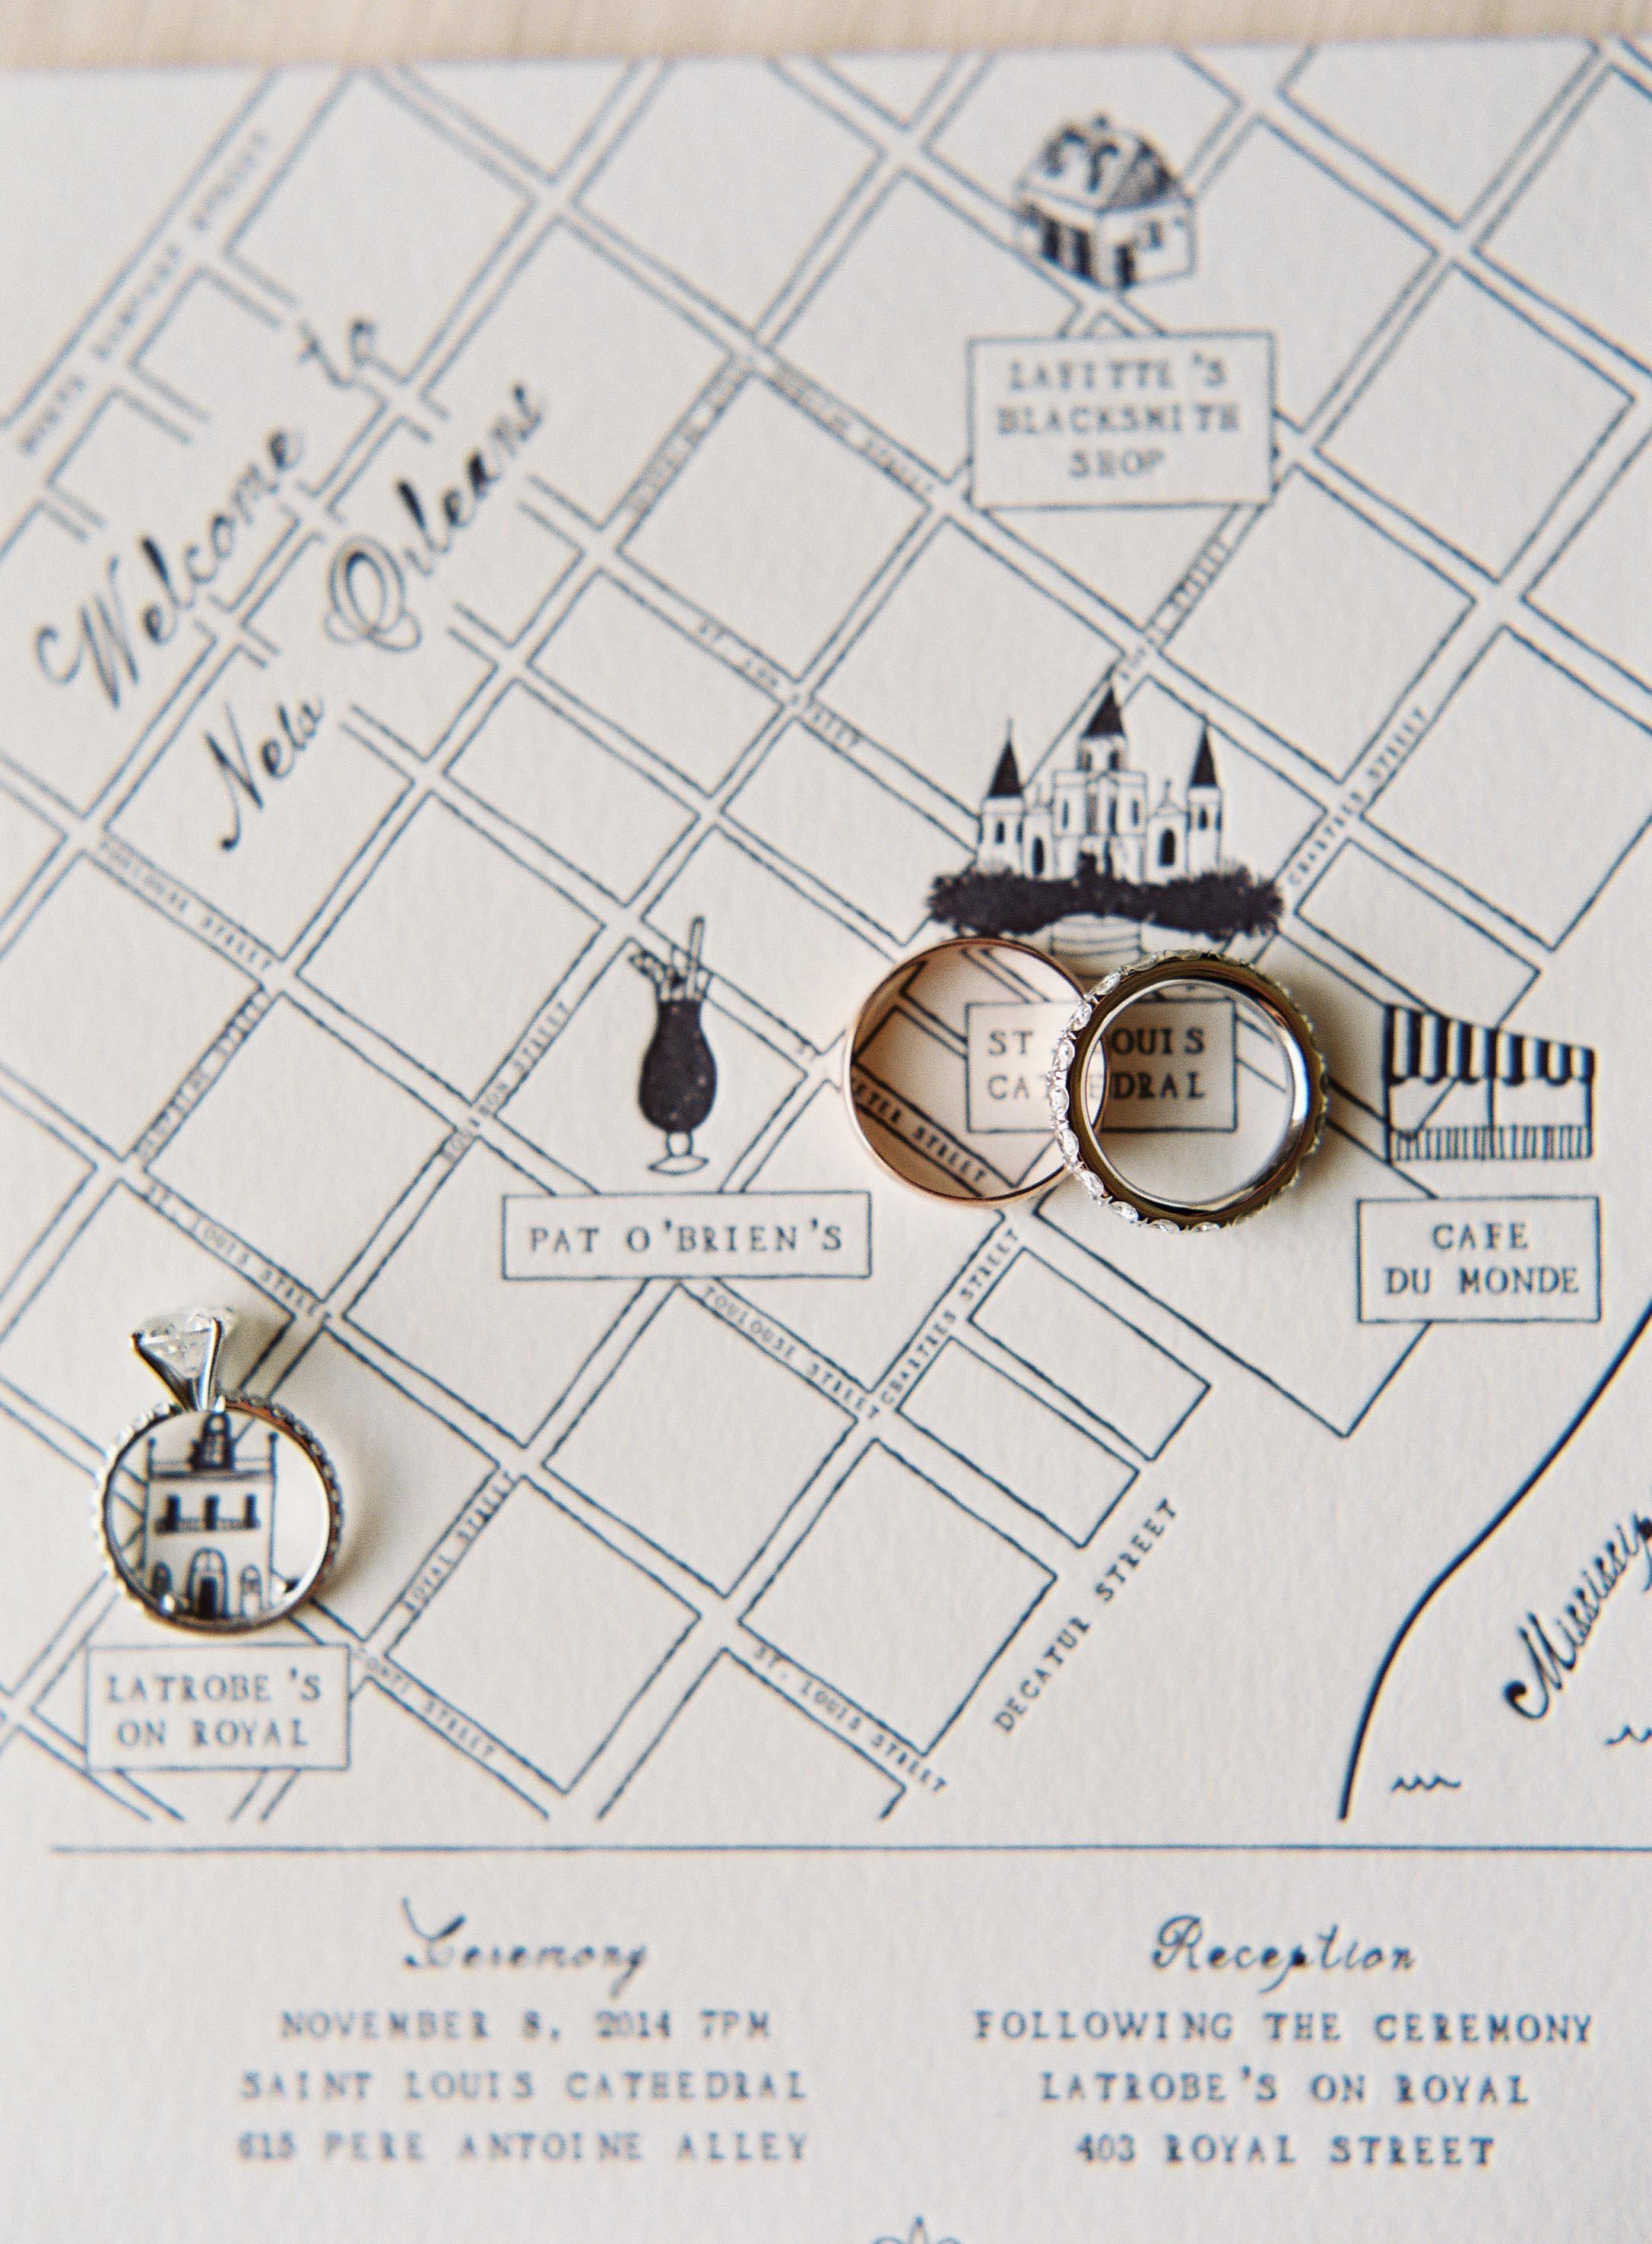 Wedding Planning Tips   Sapphire Events   Wedding Planner   Rylee Hitchner Photography   How to Use Pinterest   Letterpress Ideas   New Orleans Map   French Quarter Wedding